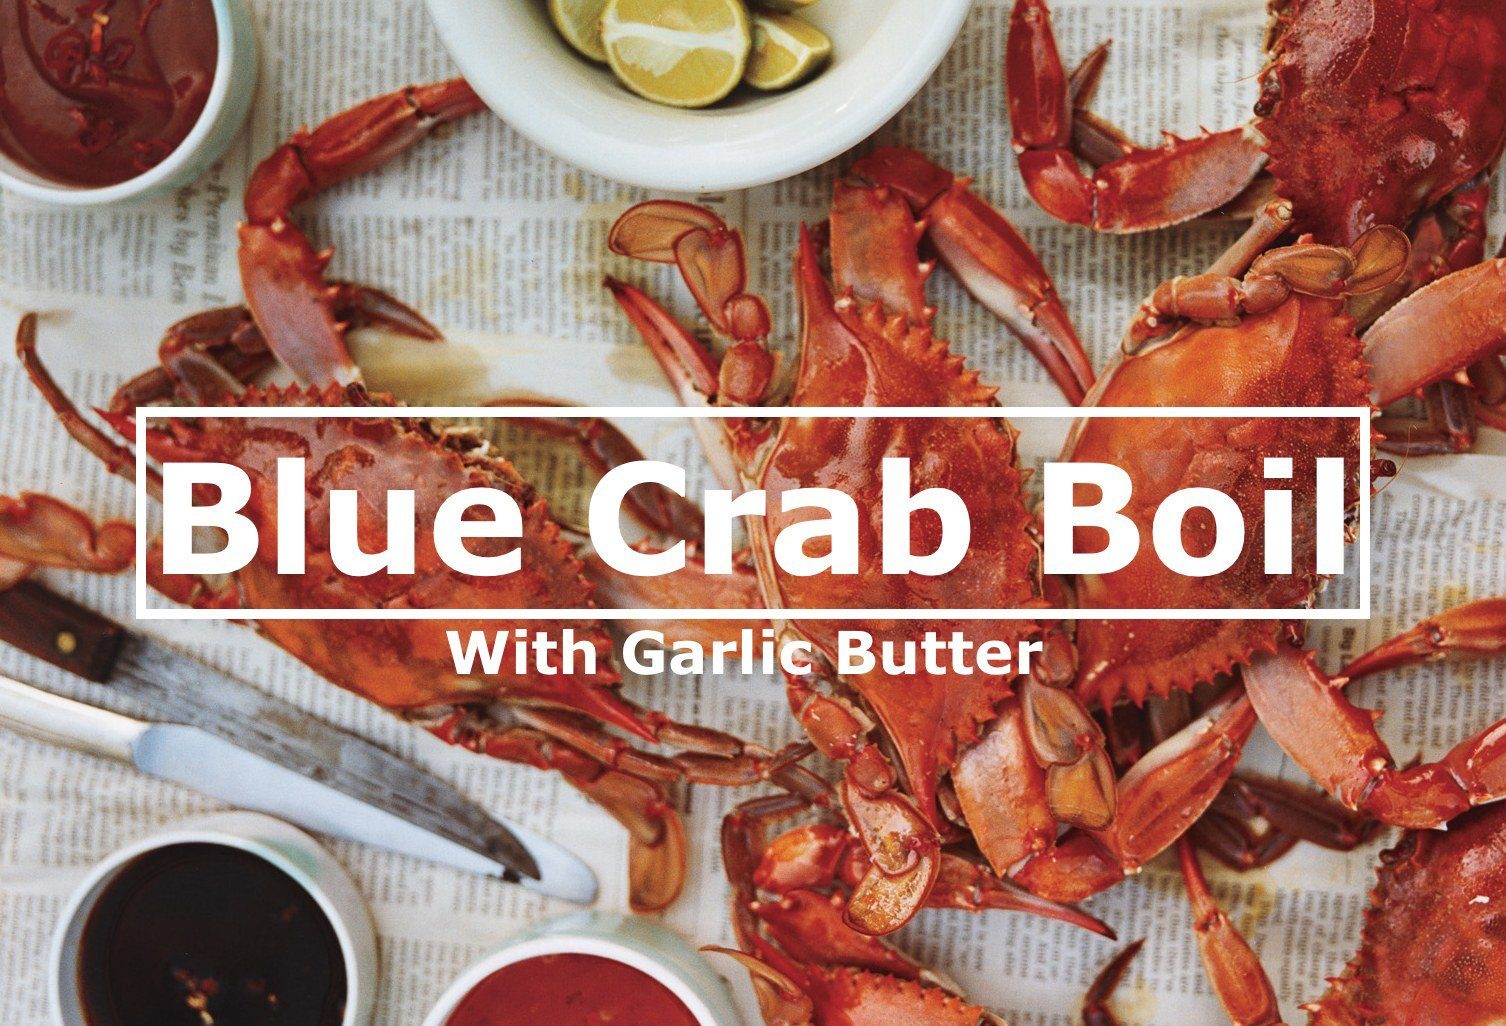 Blue Crab Boil With Garlic Butter